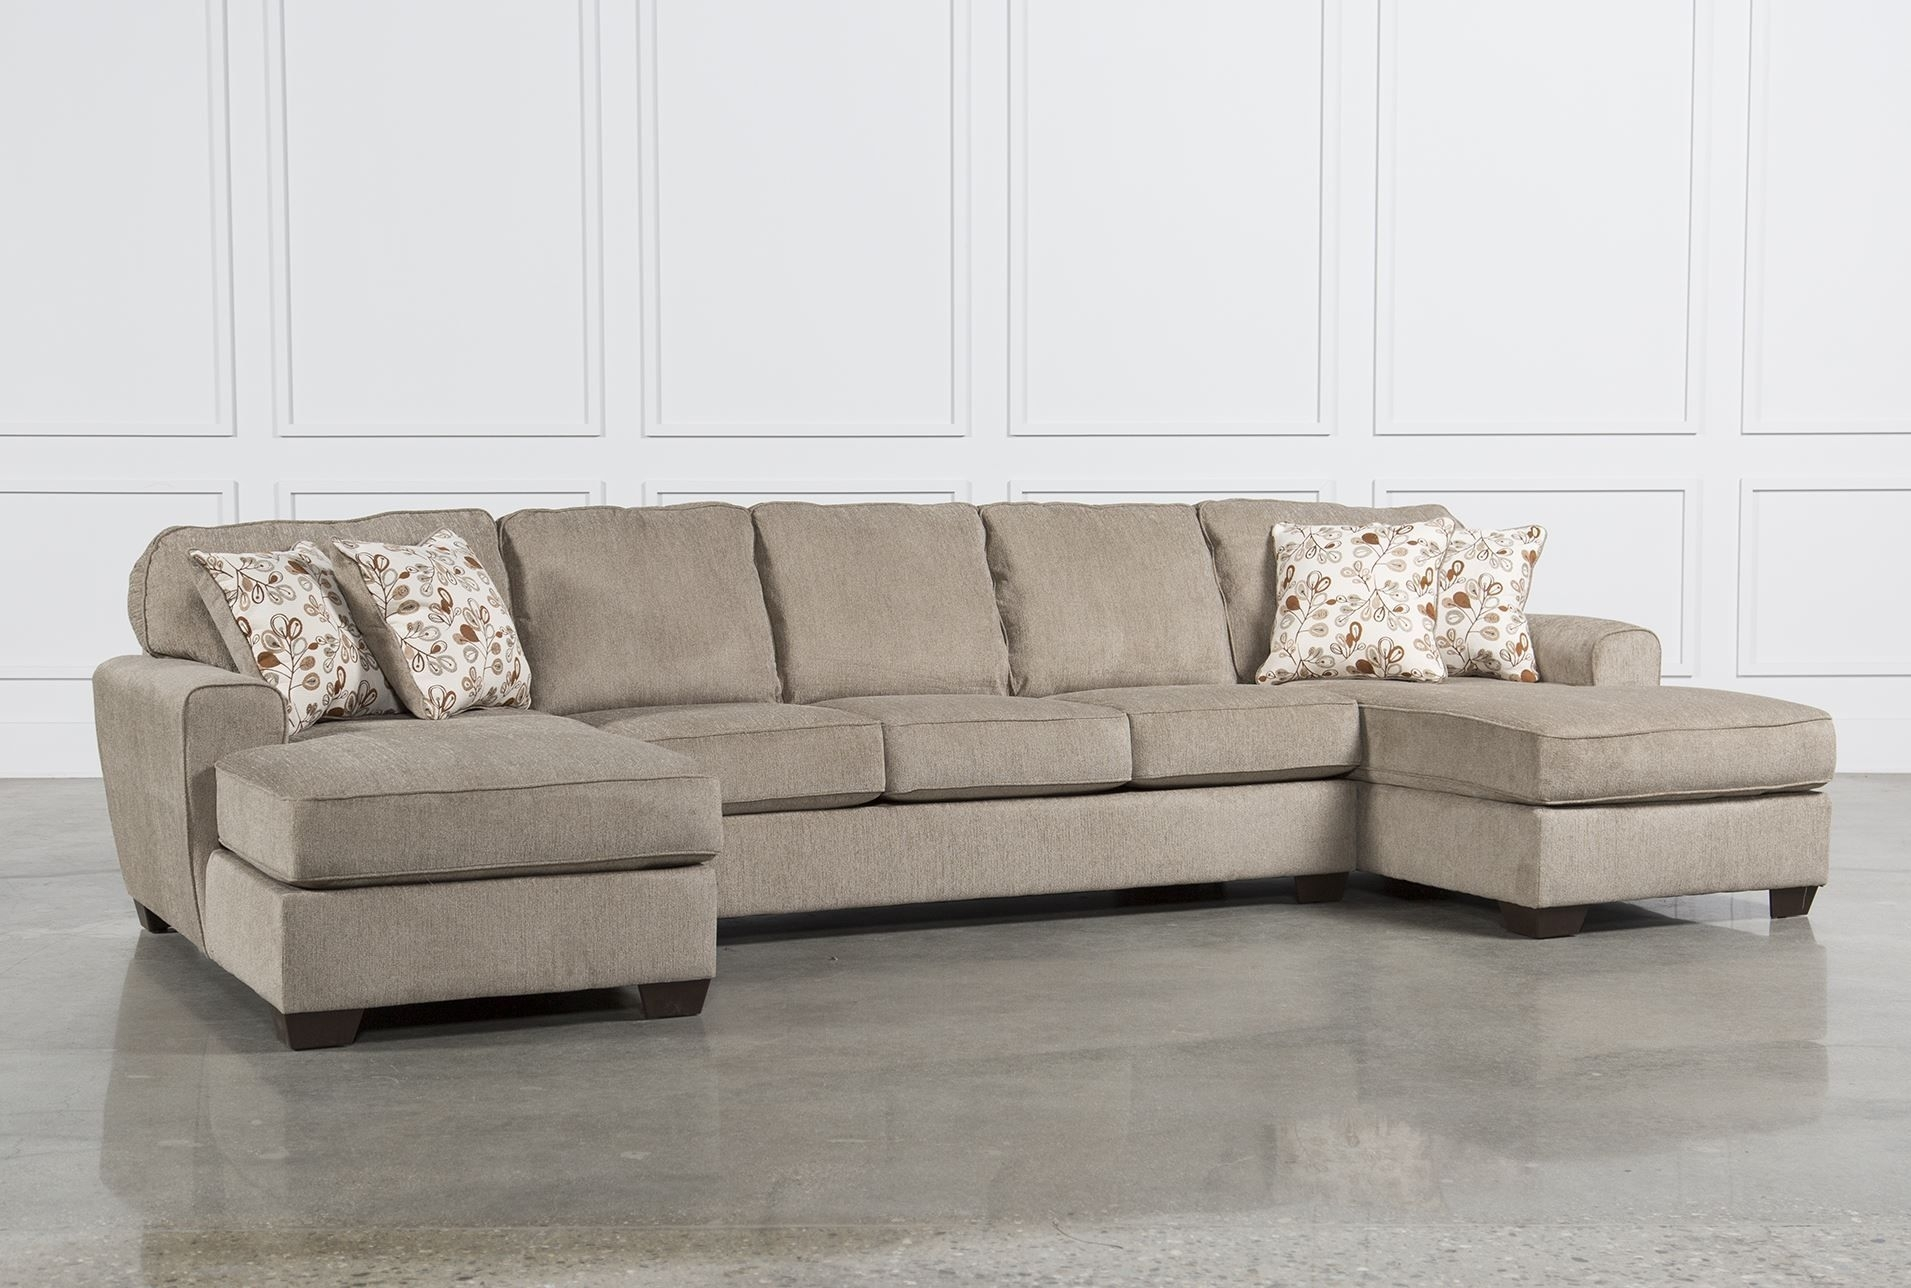 Patola Park 3 Piece Sectional W/2 Corner Chaises | Mountain Modern Within Malbry Point 3 Piece Sectionals With Laf Chaise (View 8 of 30)